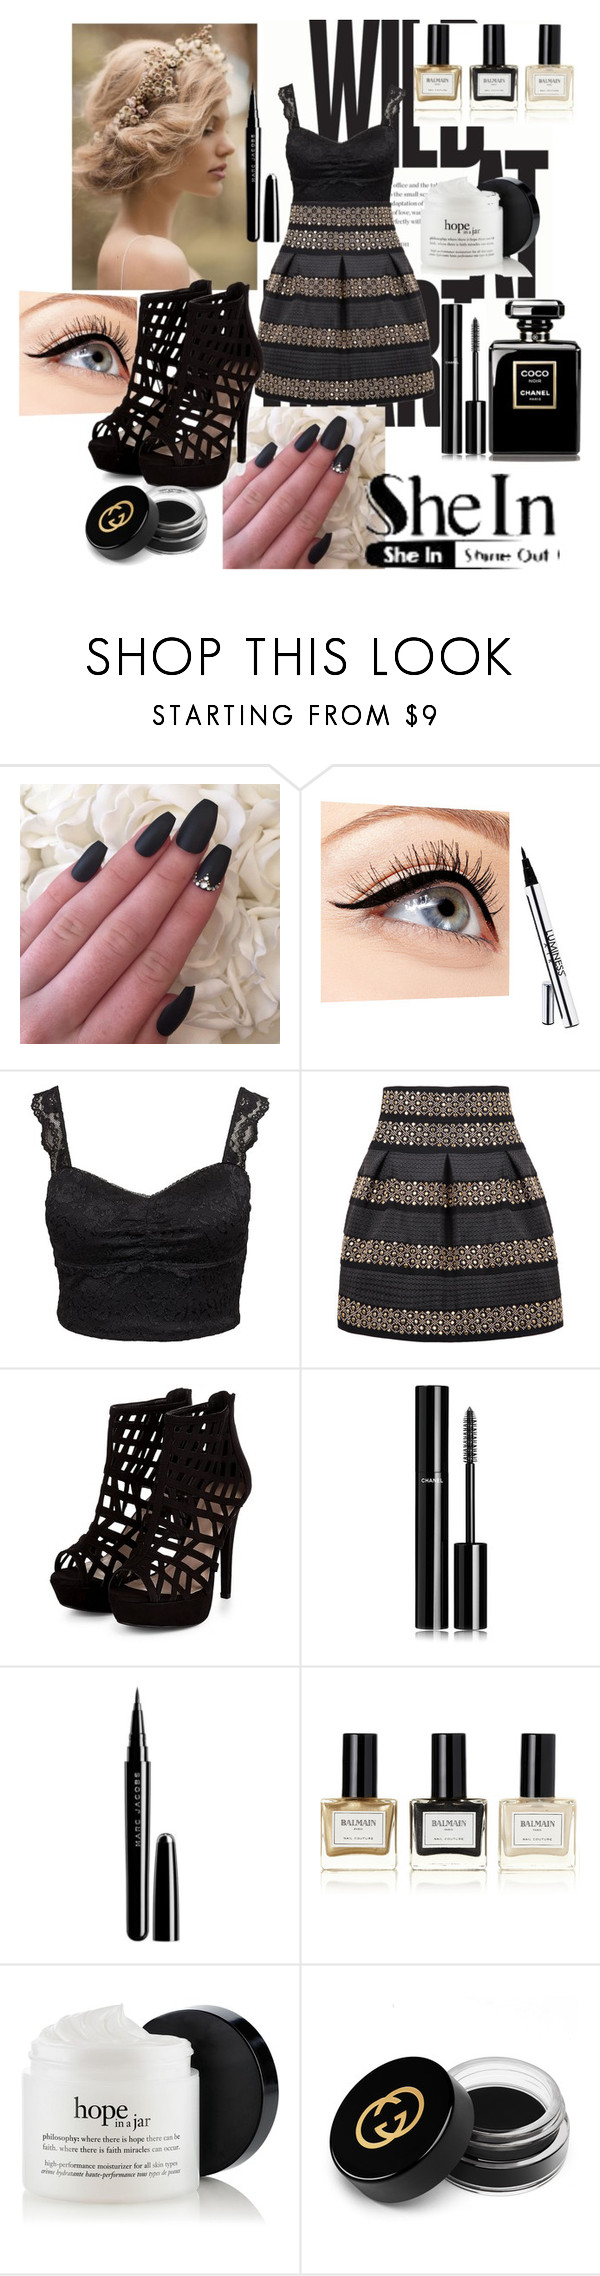 """Bez naslova #137"" by amilasahbazovic ❤ liked on Polyvore featuring moda, Luminess Air, Oneness, Chanel, Marc Jacobs, Balmain y Gucci"